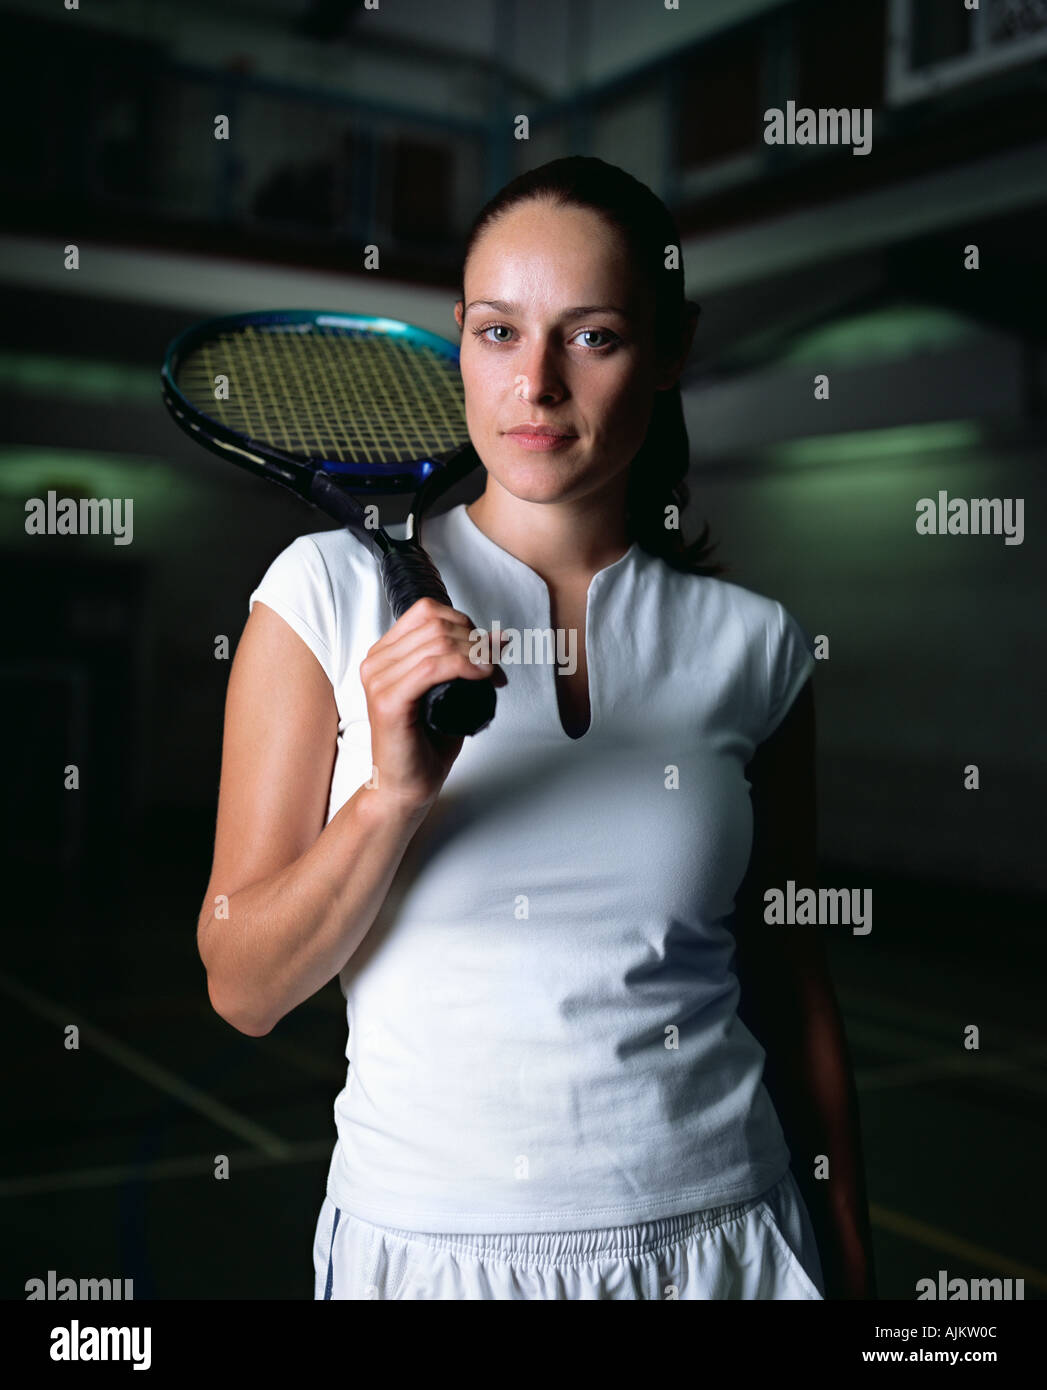 Female tennis player - Stock Image